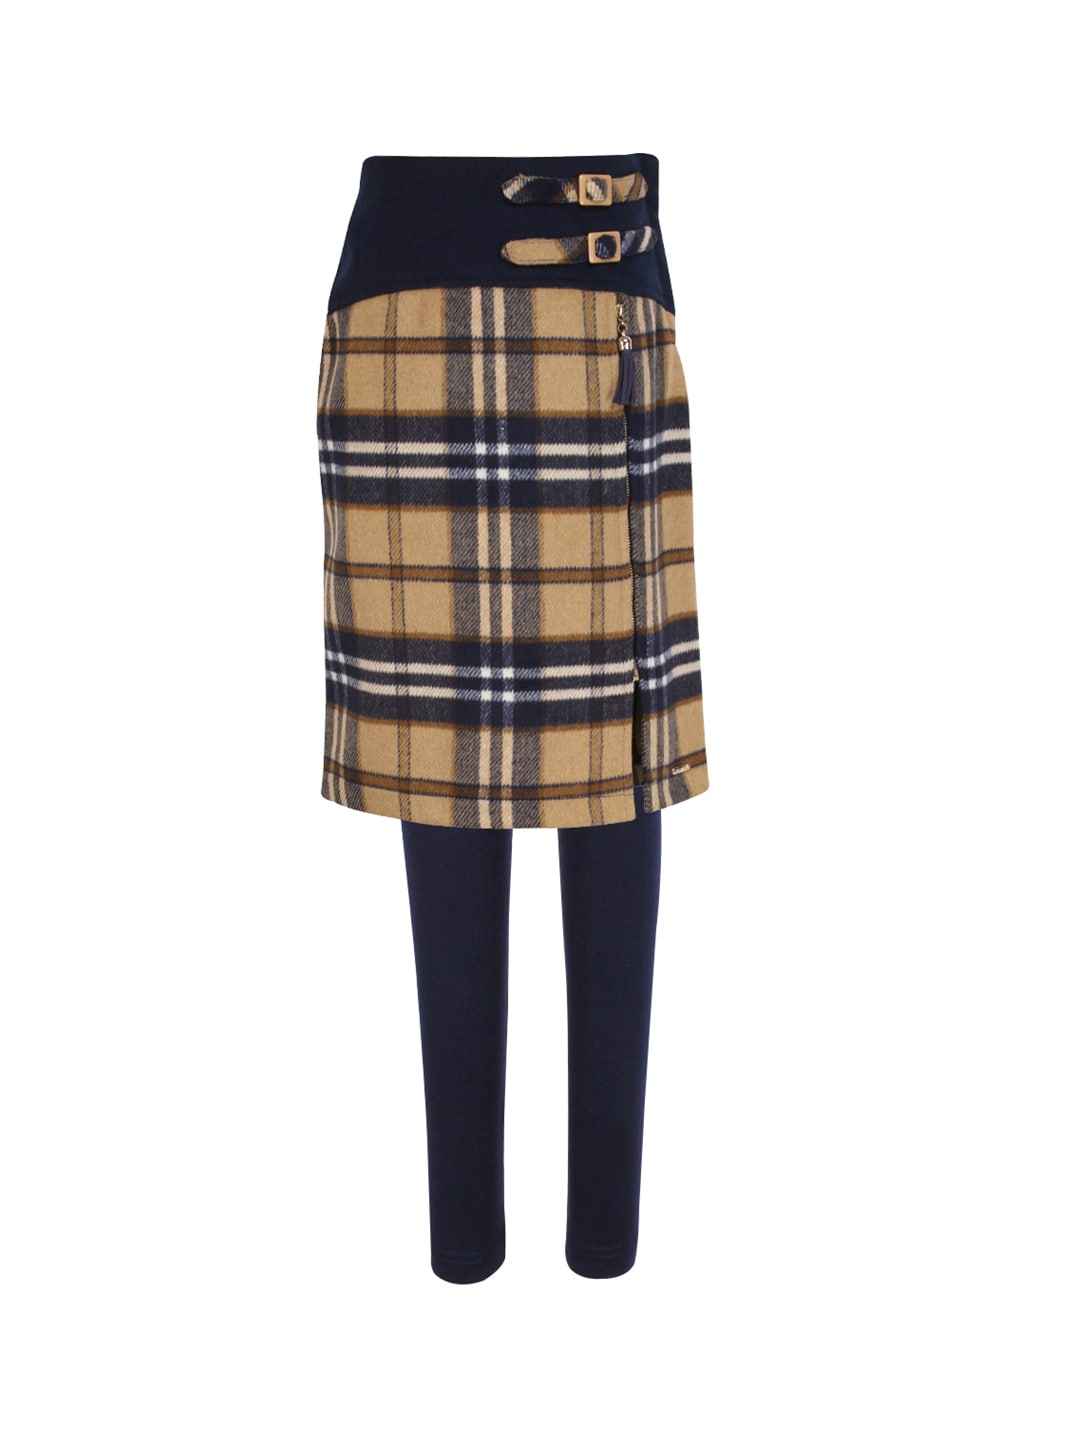 52a17a4334 Checked Skirts - Buy Checked Skirts online in India